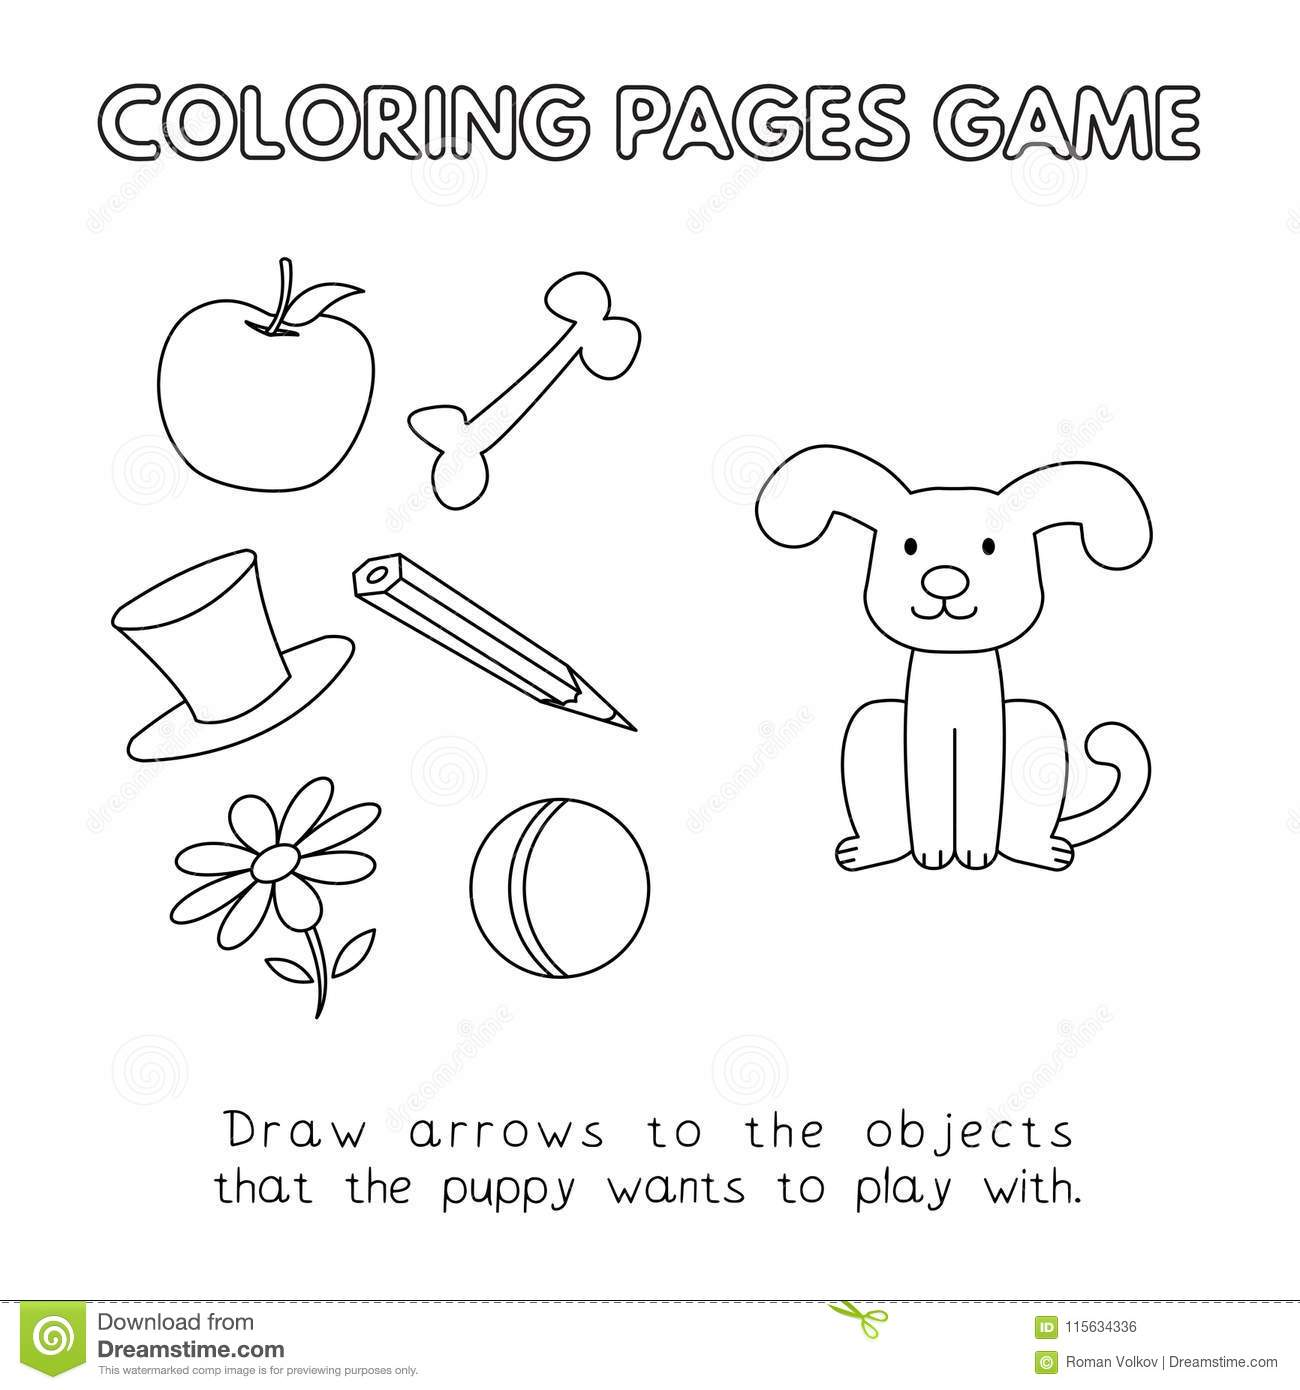 Free Dog Coloring Book Page, Download Free Clip Art, Free Clip Art on  Clipart Library | 1390x1300